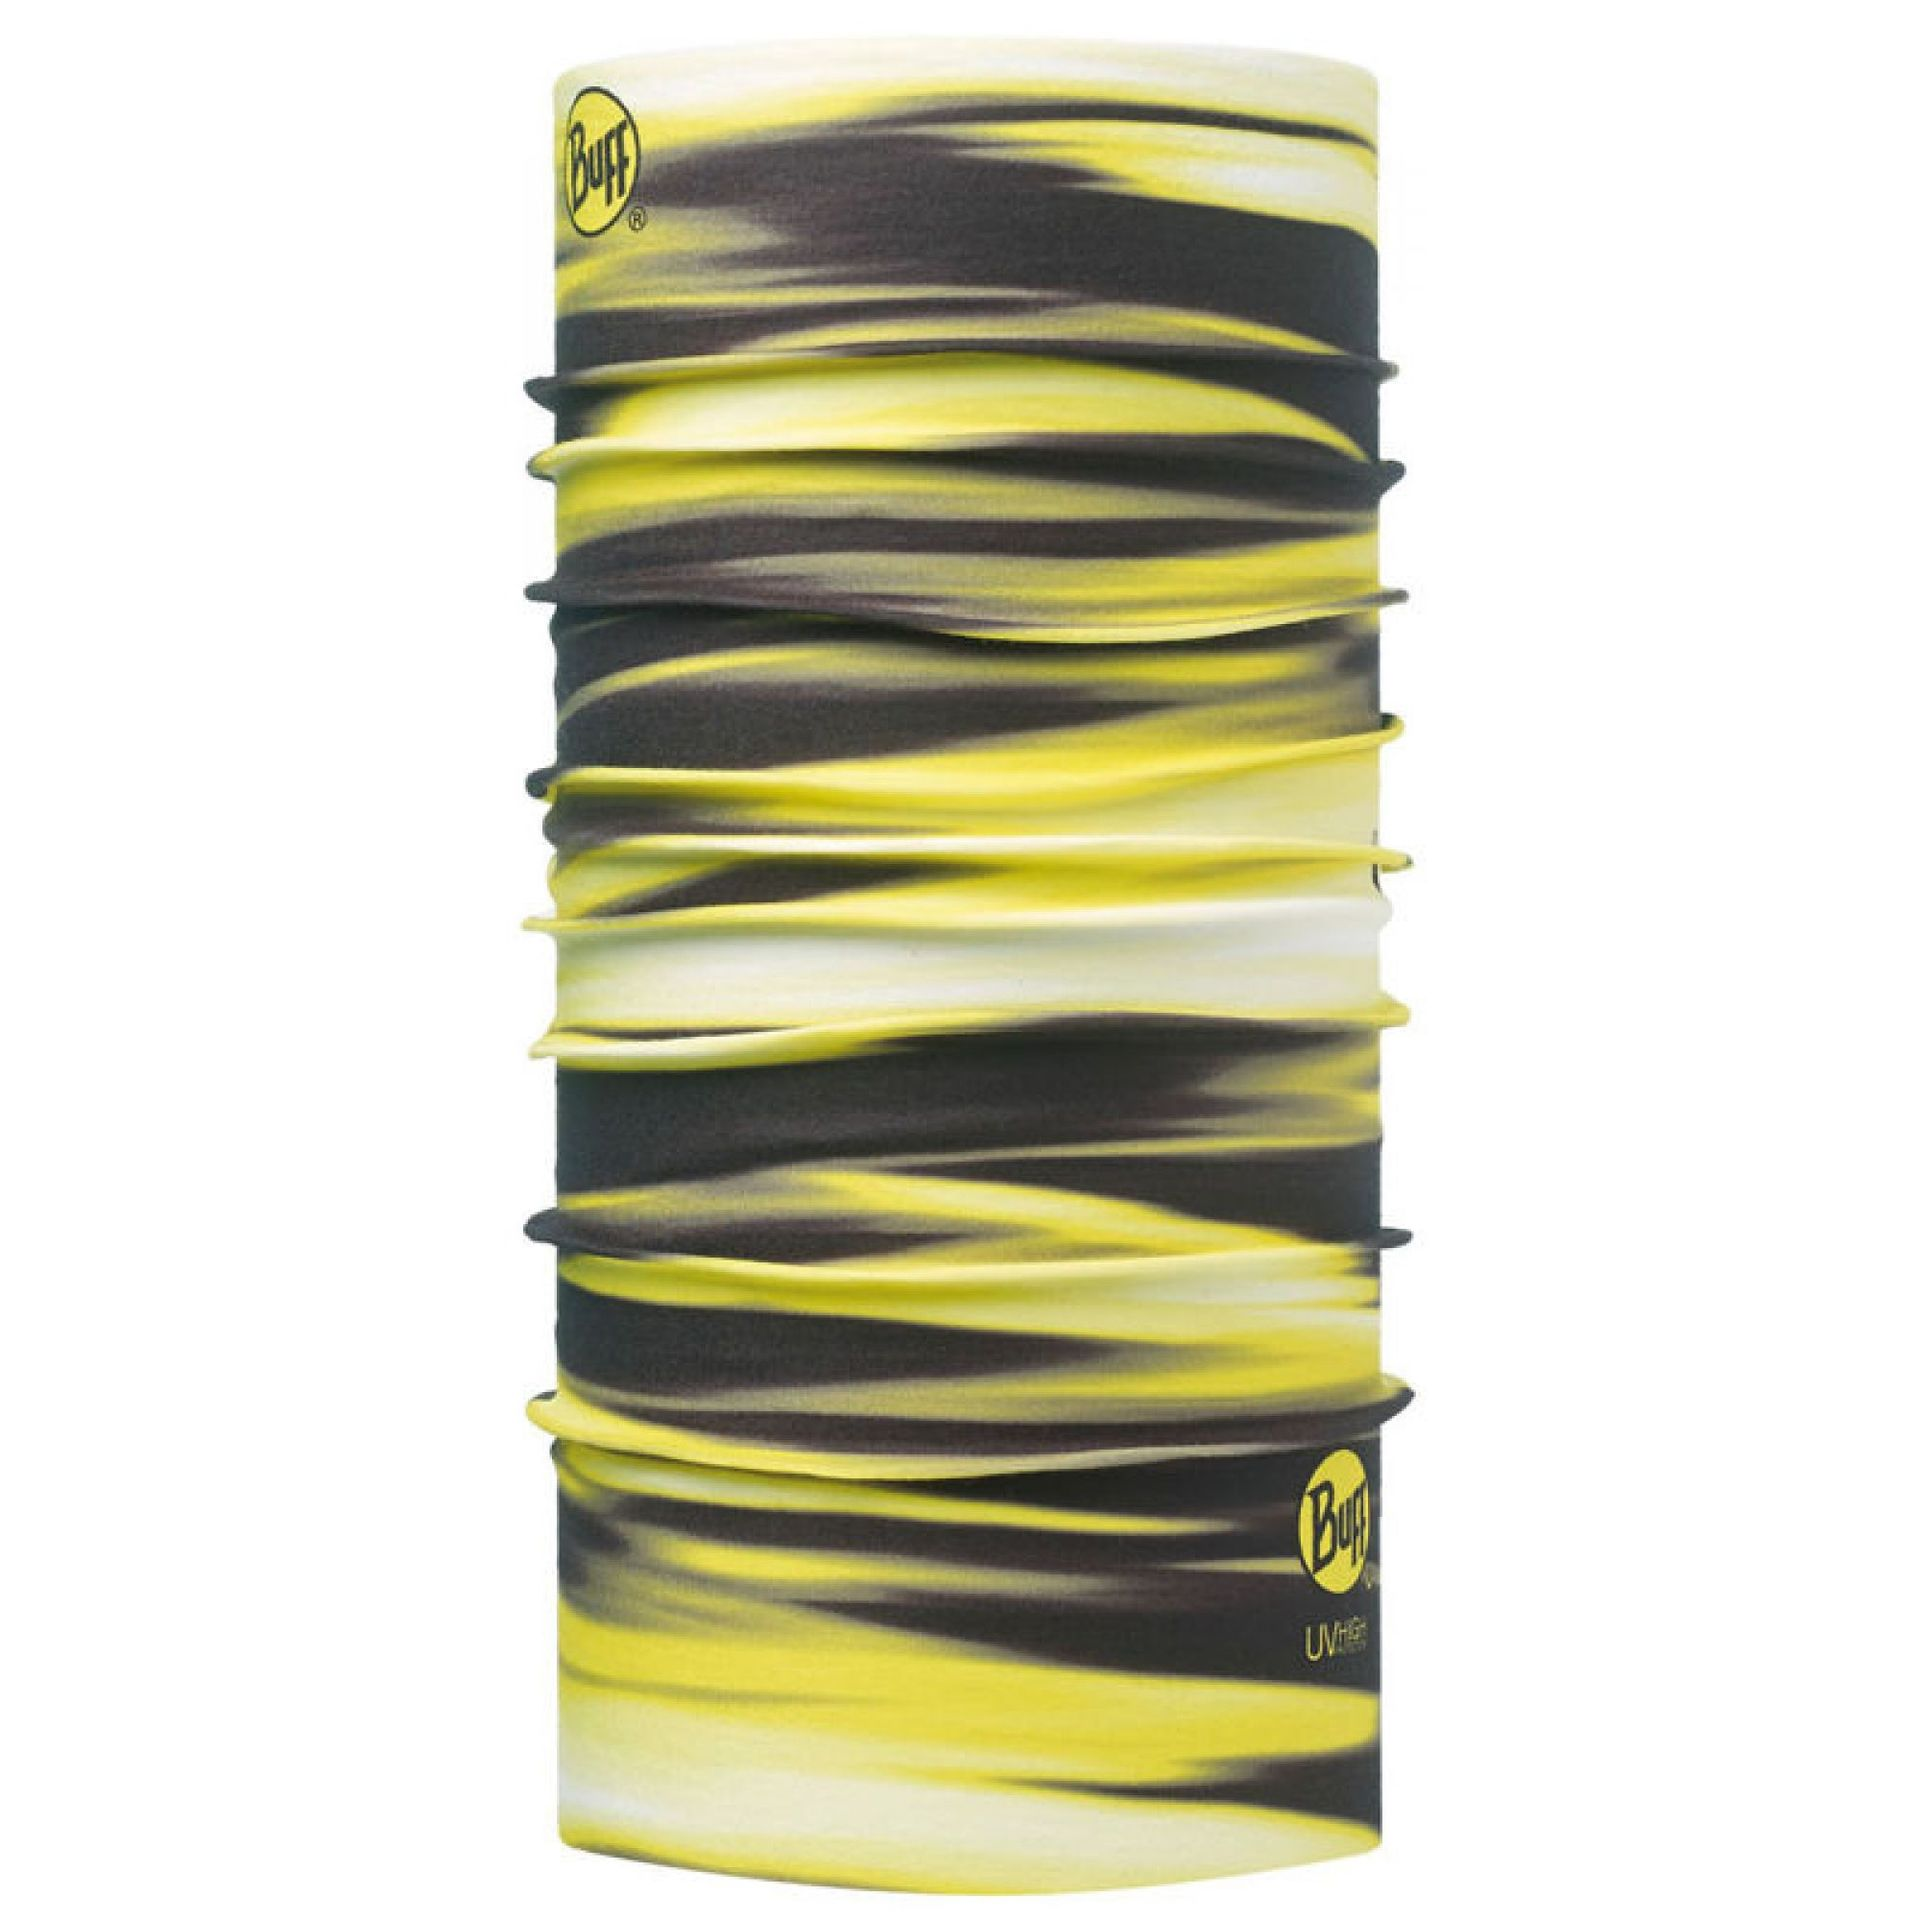 CHUSTA BUFF HIGH UV PROTECTION LESH YELLOW